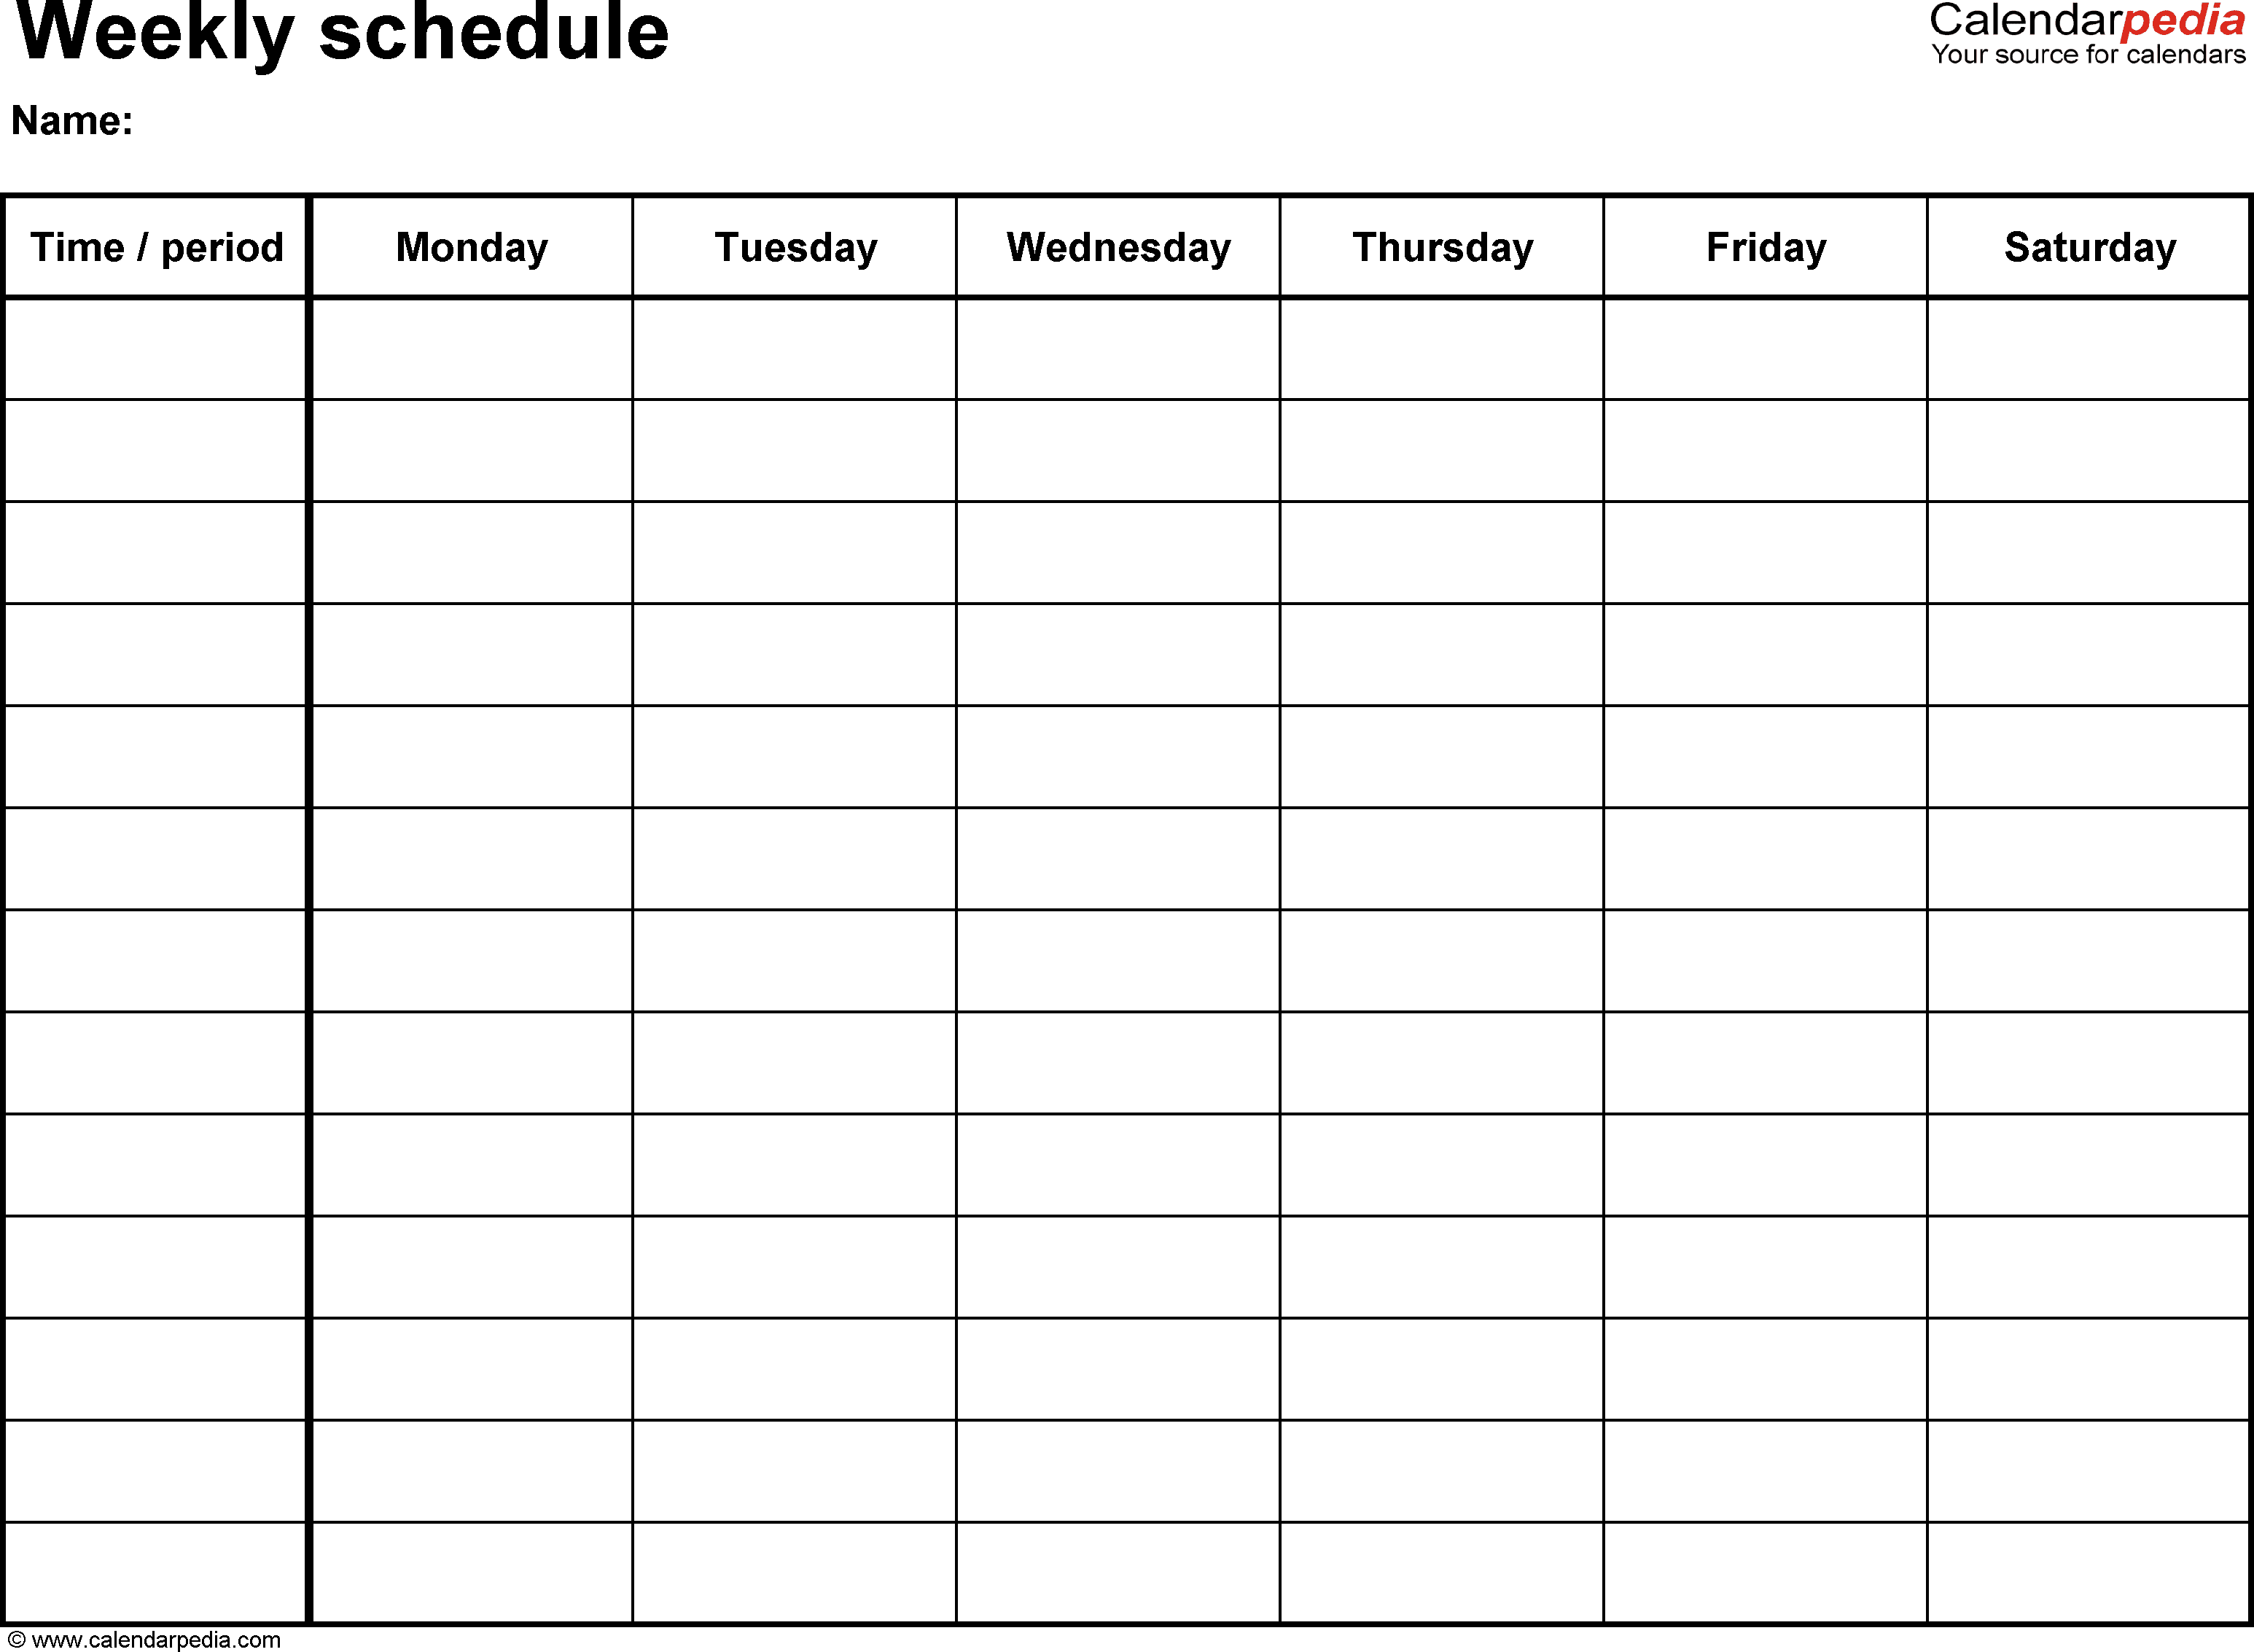 Daily Schedule Template Pdf